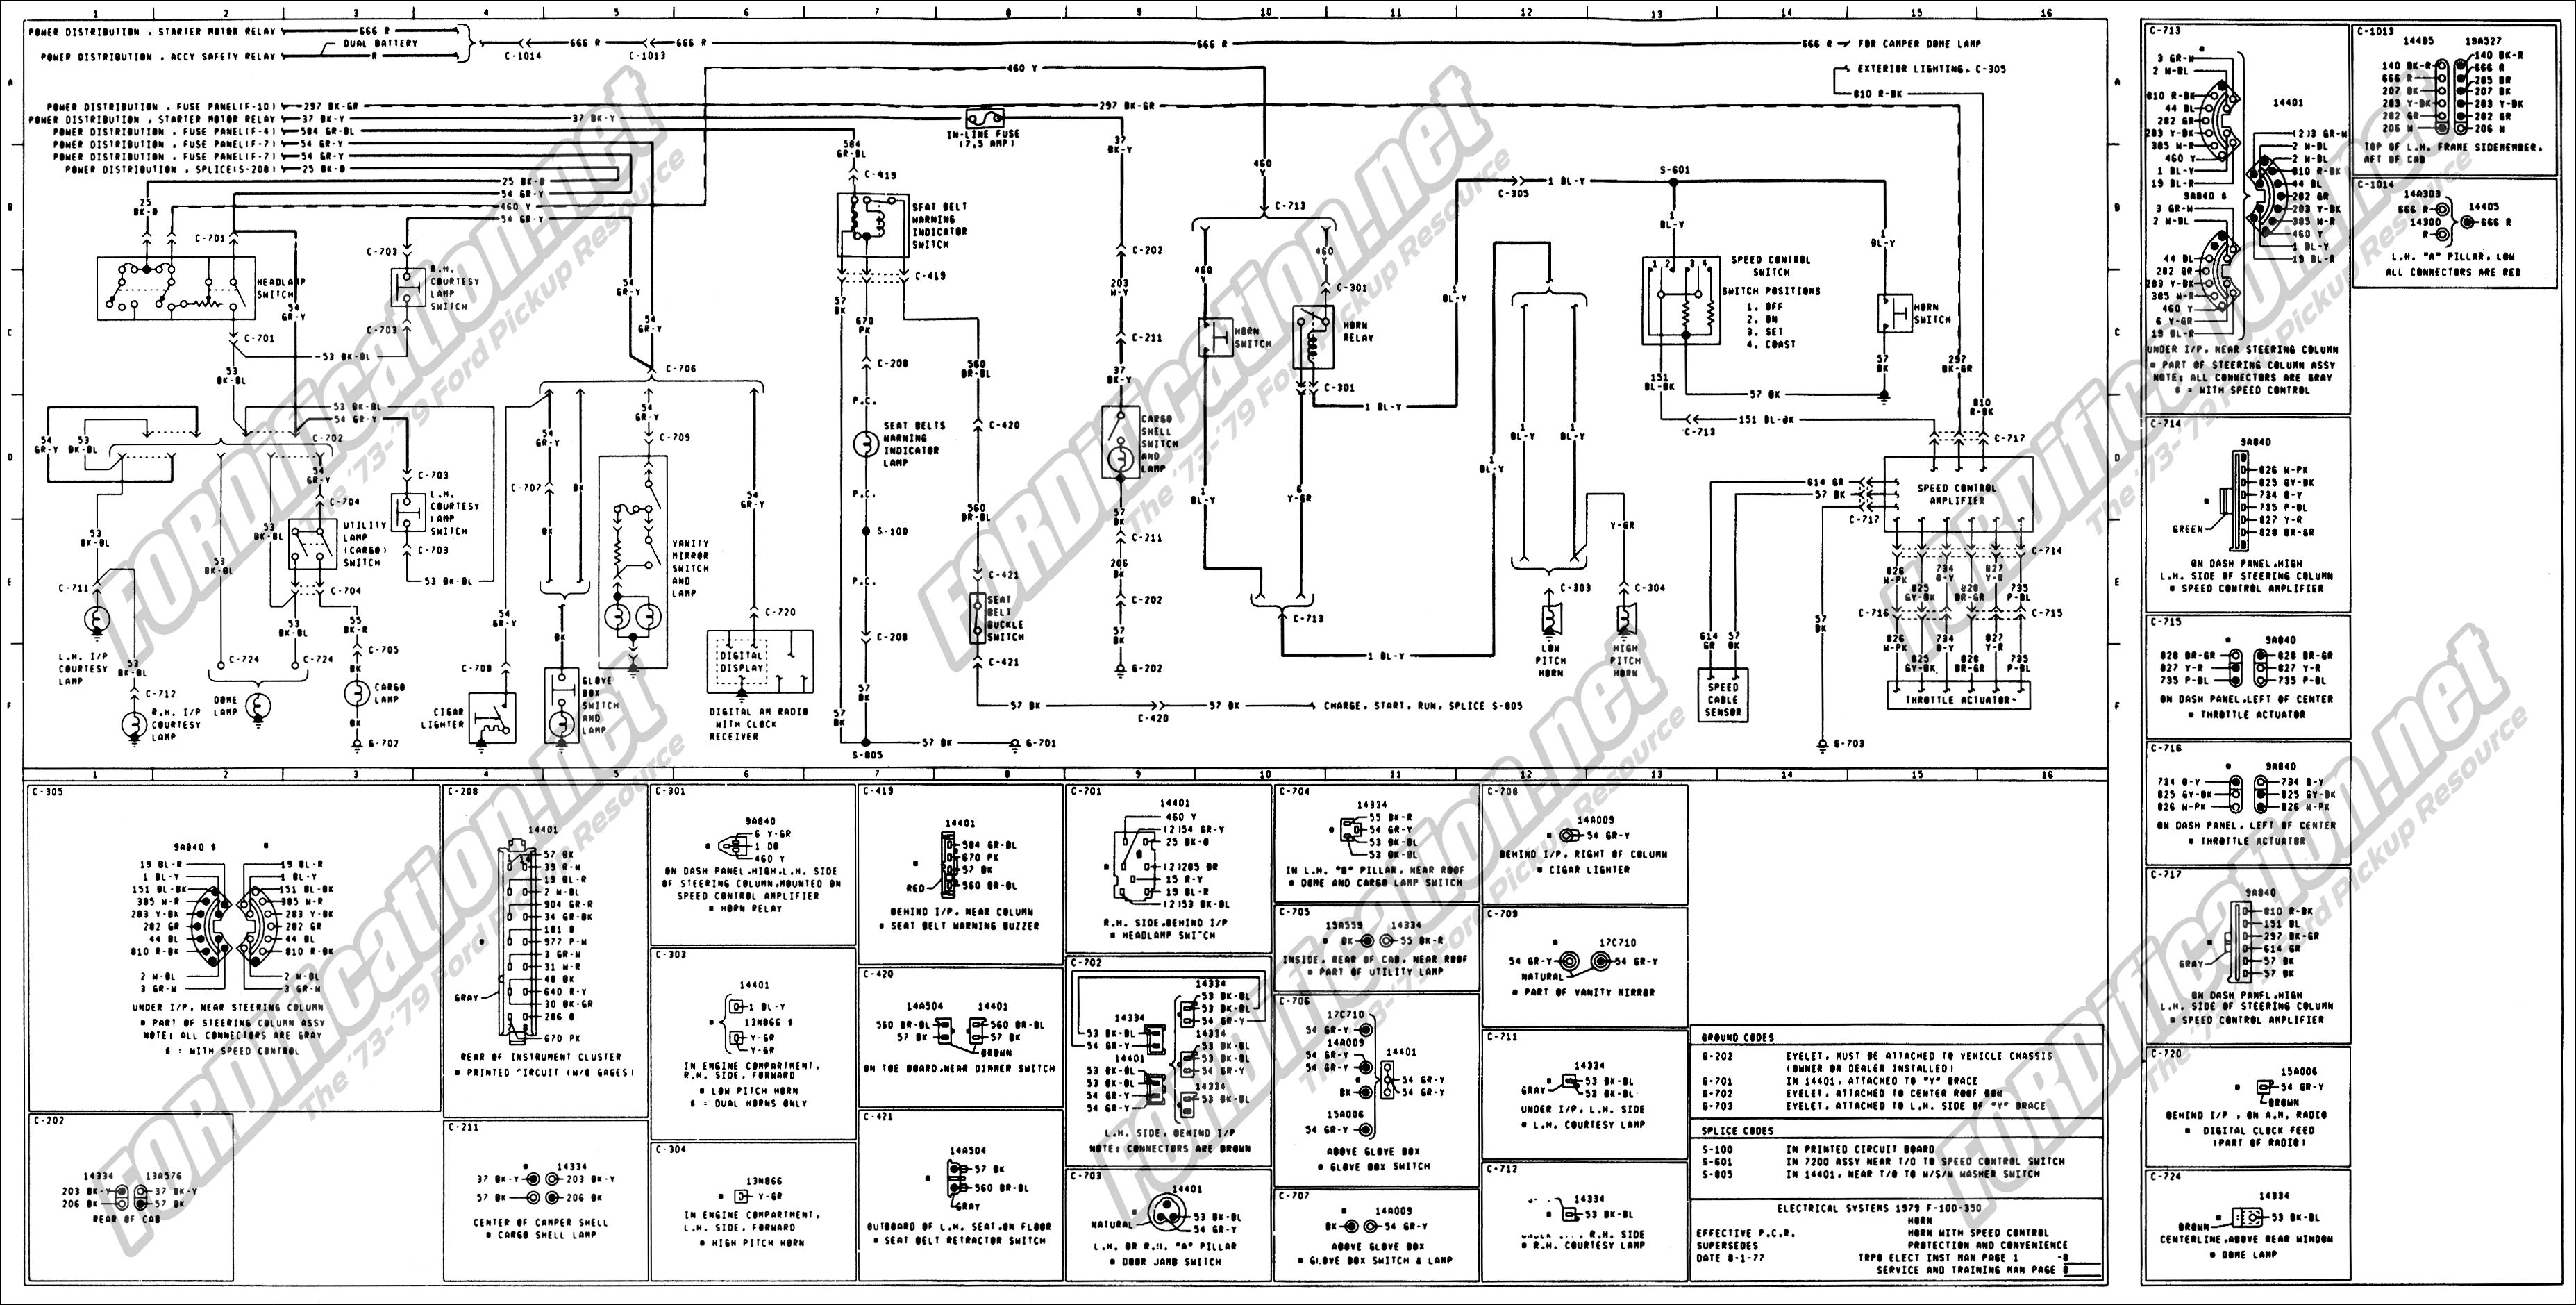 1973 1979 ford truck wiring diagrams schematics fordification net rh fordification net 2011 Ford F-150 Wiring Diagram 2011 Ford F-150 Wiring Diagram